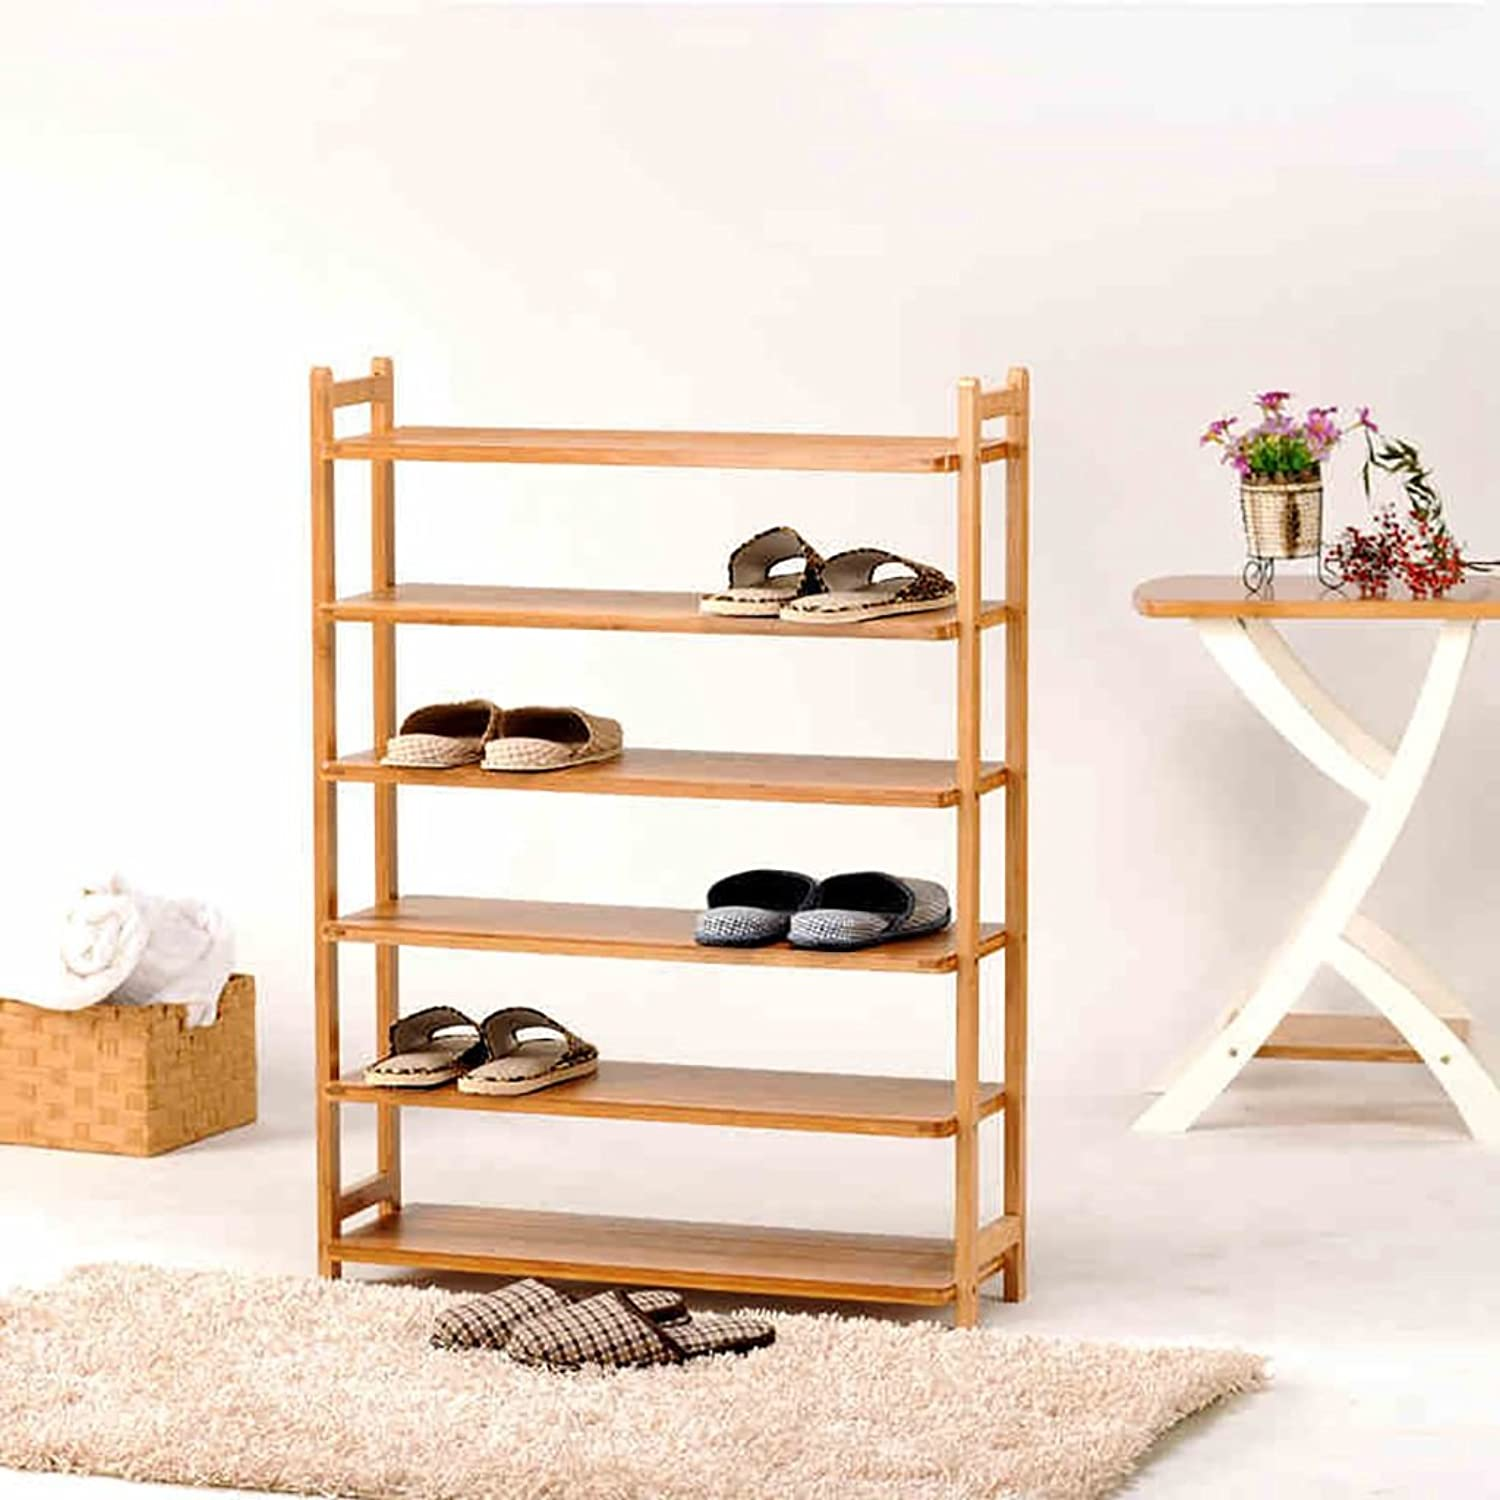 shoes Bench Organizing Rack shoes Racks Bamboo Bamboo shoes Racks Multi - Purpose Shelves Creative Storage shoes Rack Living Room Bedroom Finishing Rack